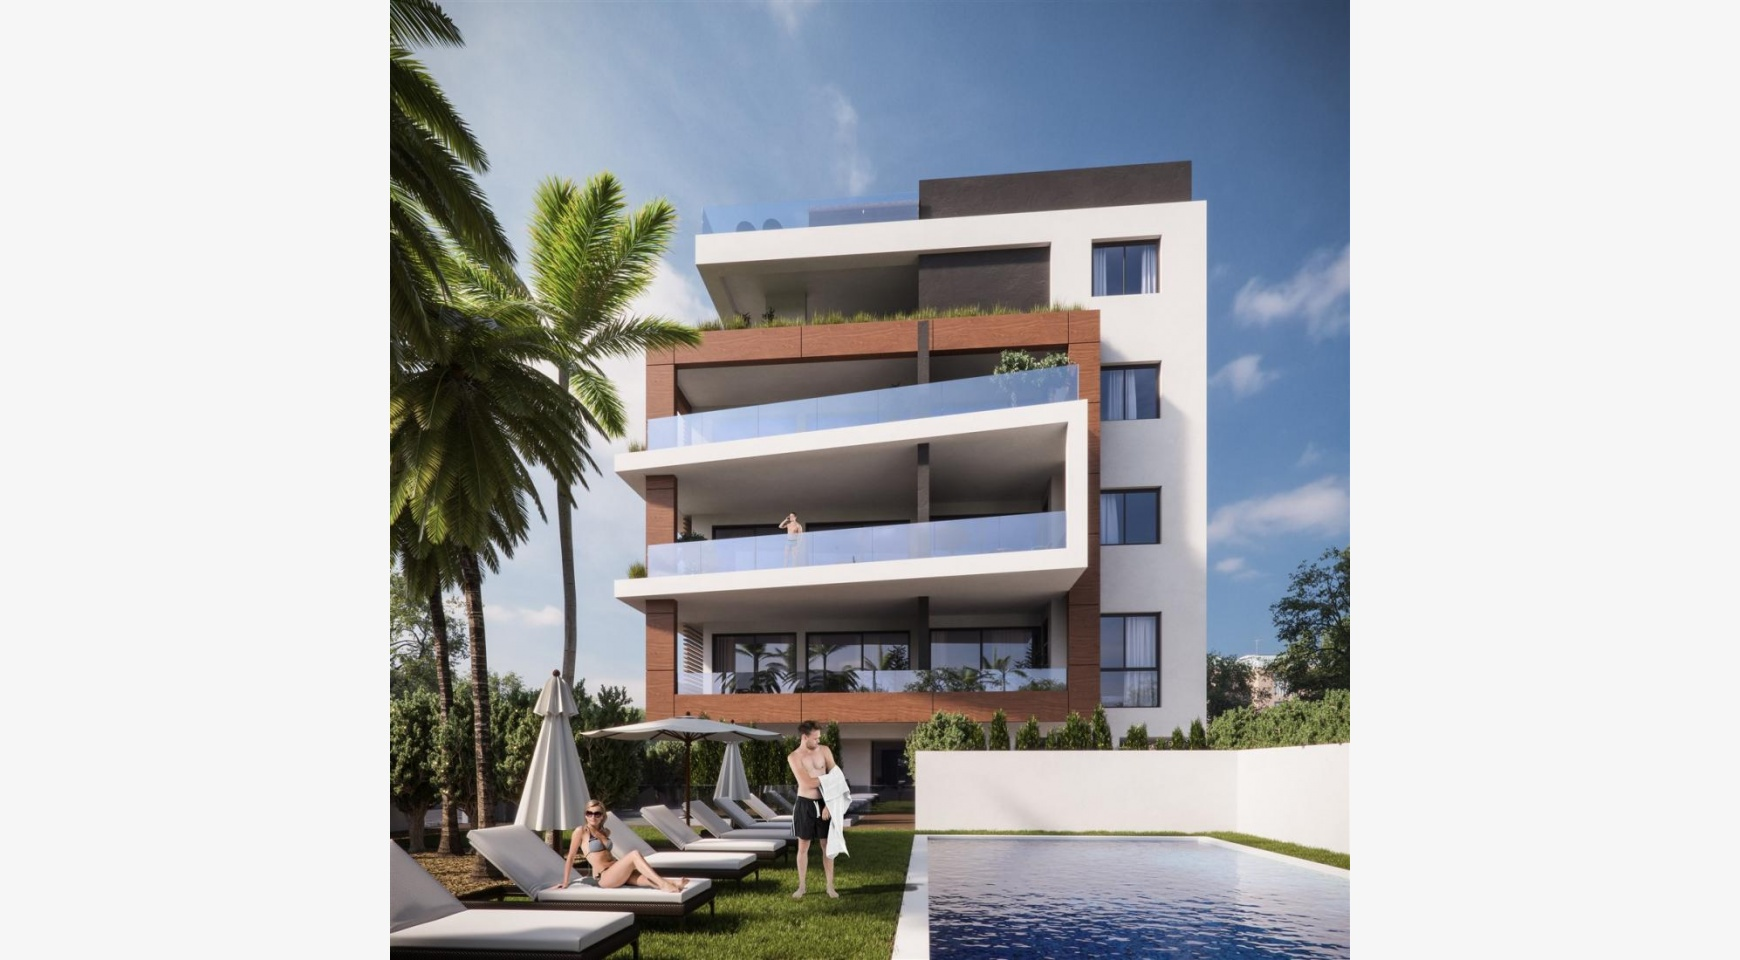 Malibu Residences. Luxury 3 Bedroom Penthouse with Private Swimming Pool - 6